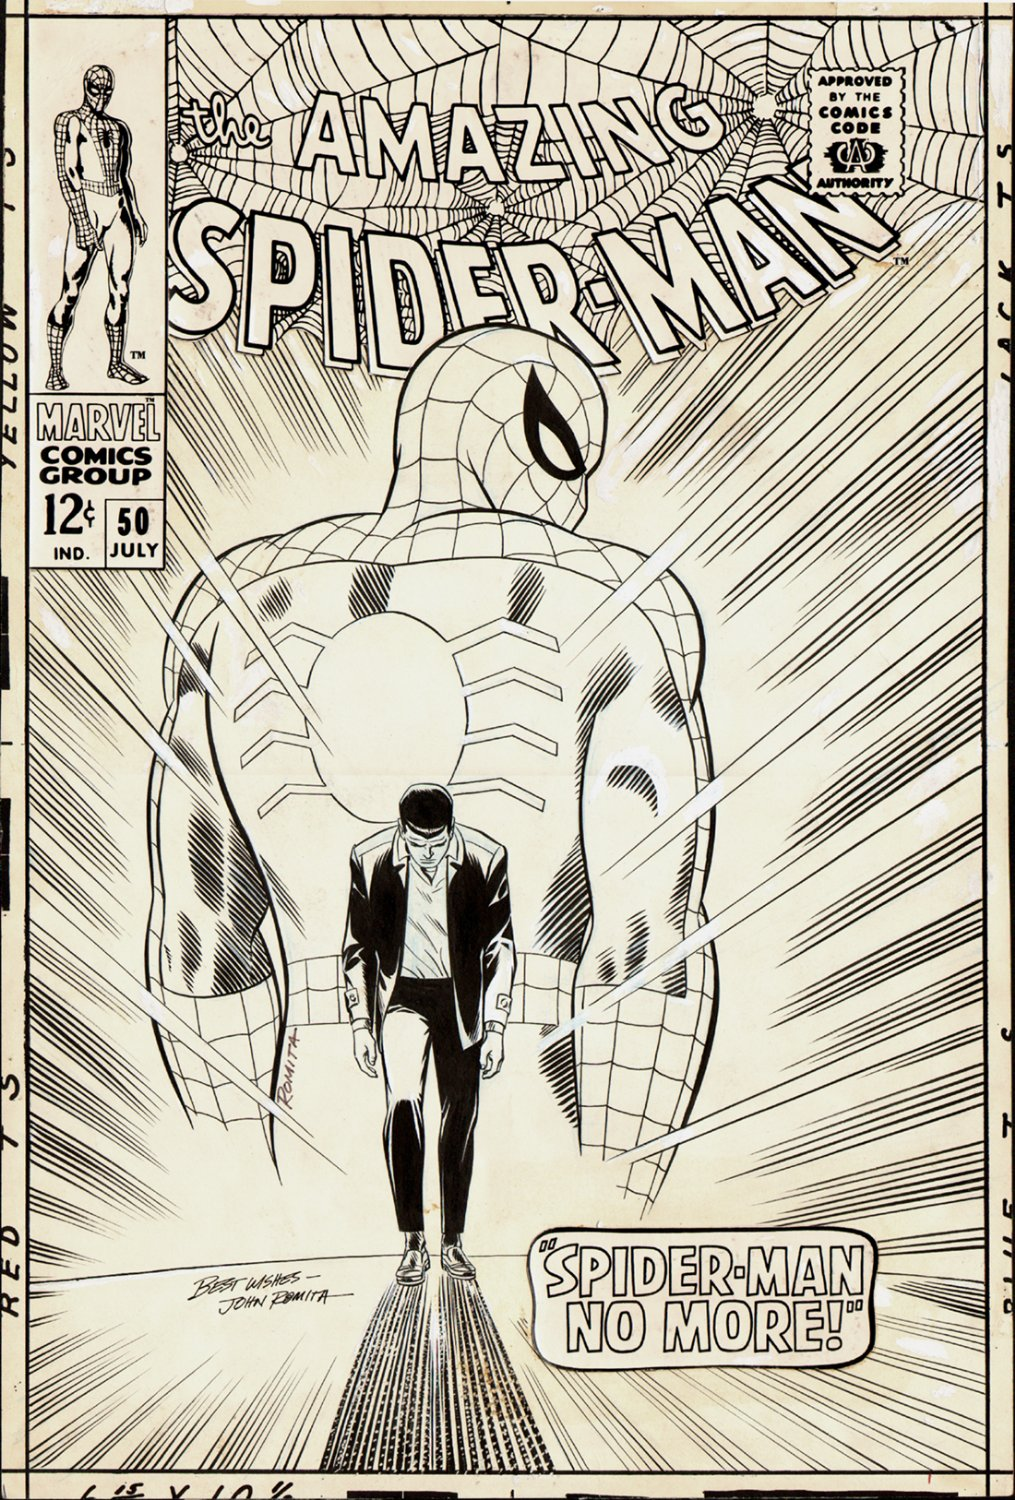 Amazing Spider-Man #50 Cover (Large Art) 1967 SOLD SOLD SOLD!